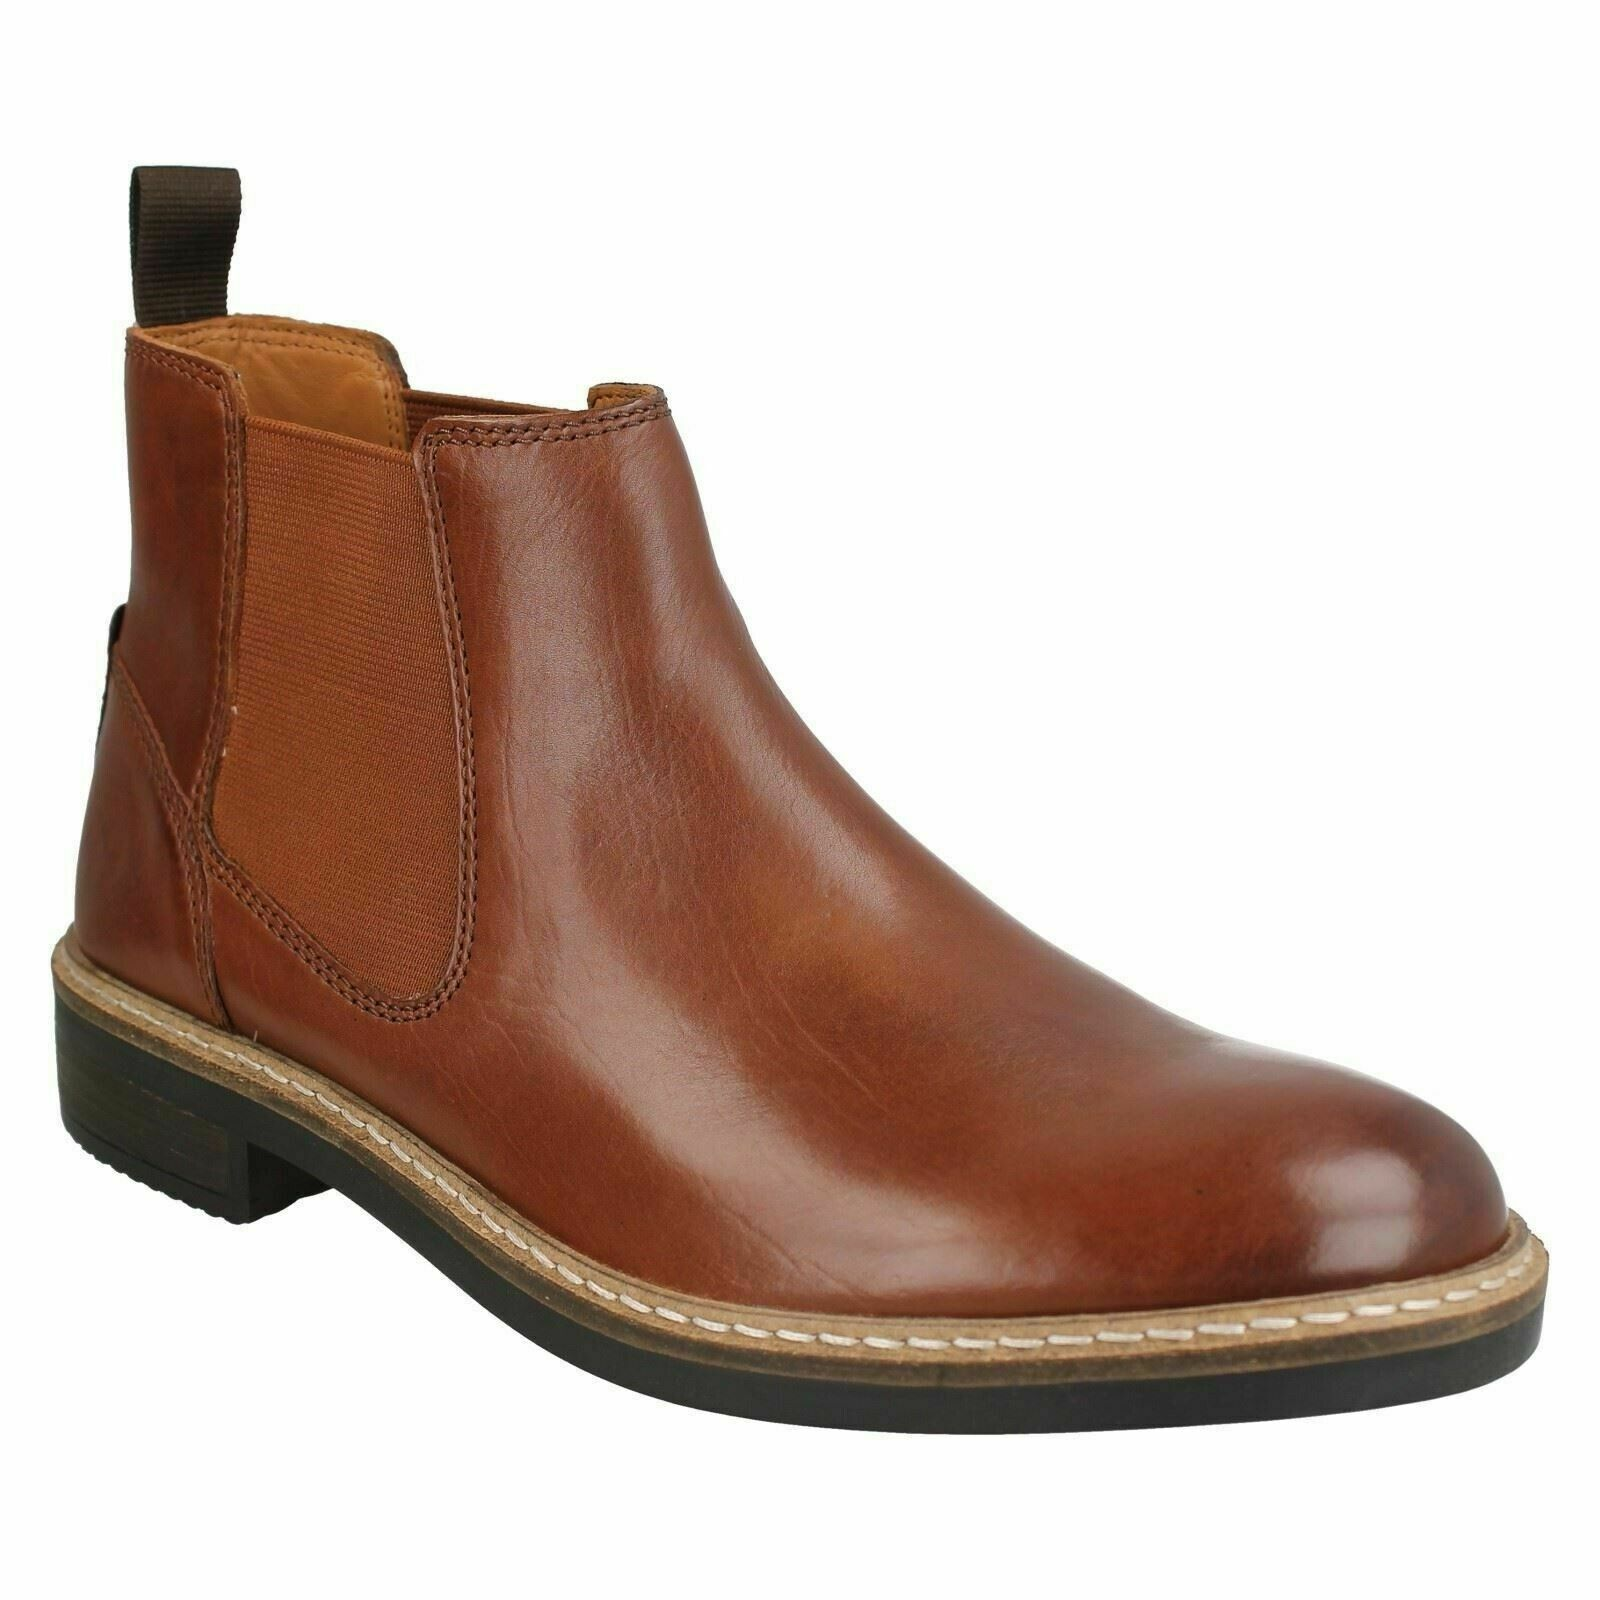 MENS CLARKS BLACKFORD TOP PULL ON CLASSIC CHELSEA SMART WORK ANKLE BOOTS SIZE